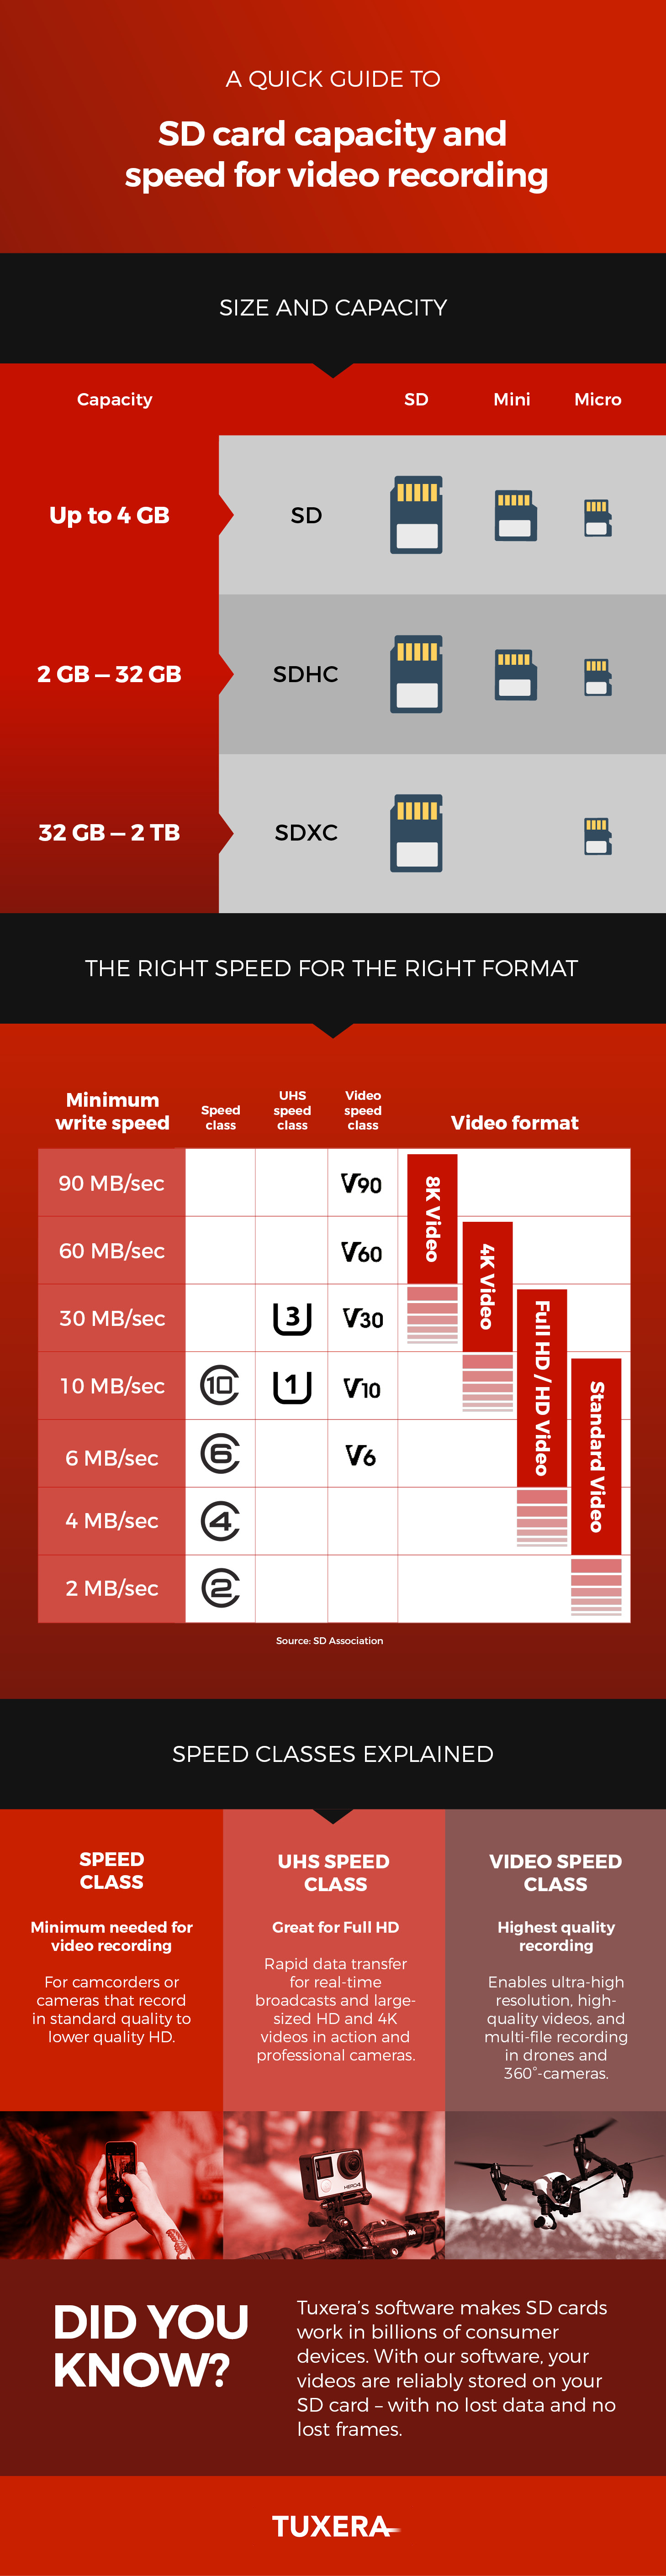 Tuxera – How to choose SD cards for video recording – Infographic